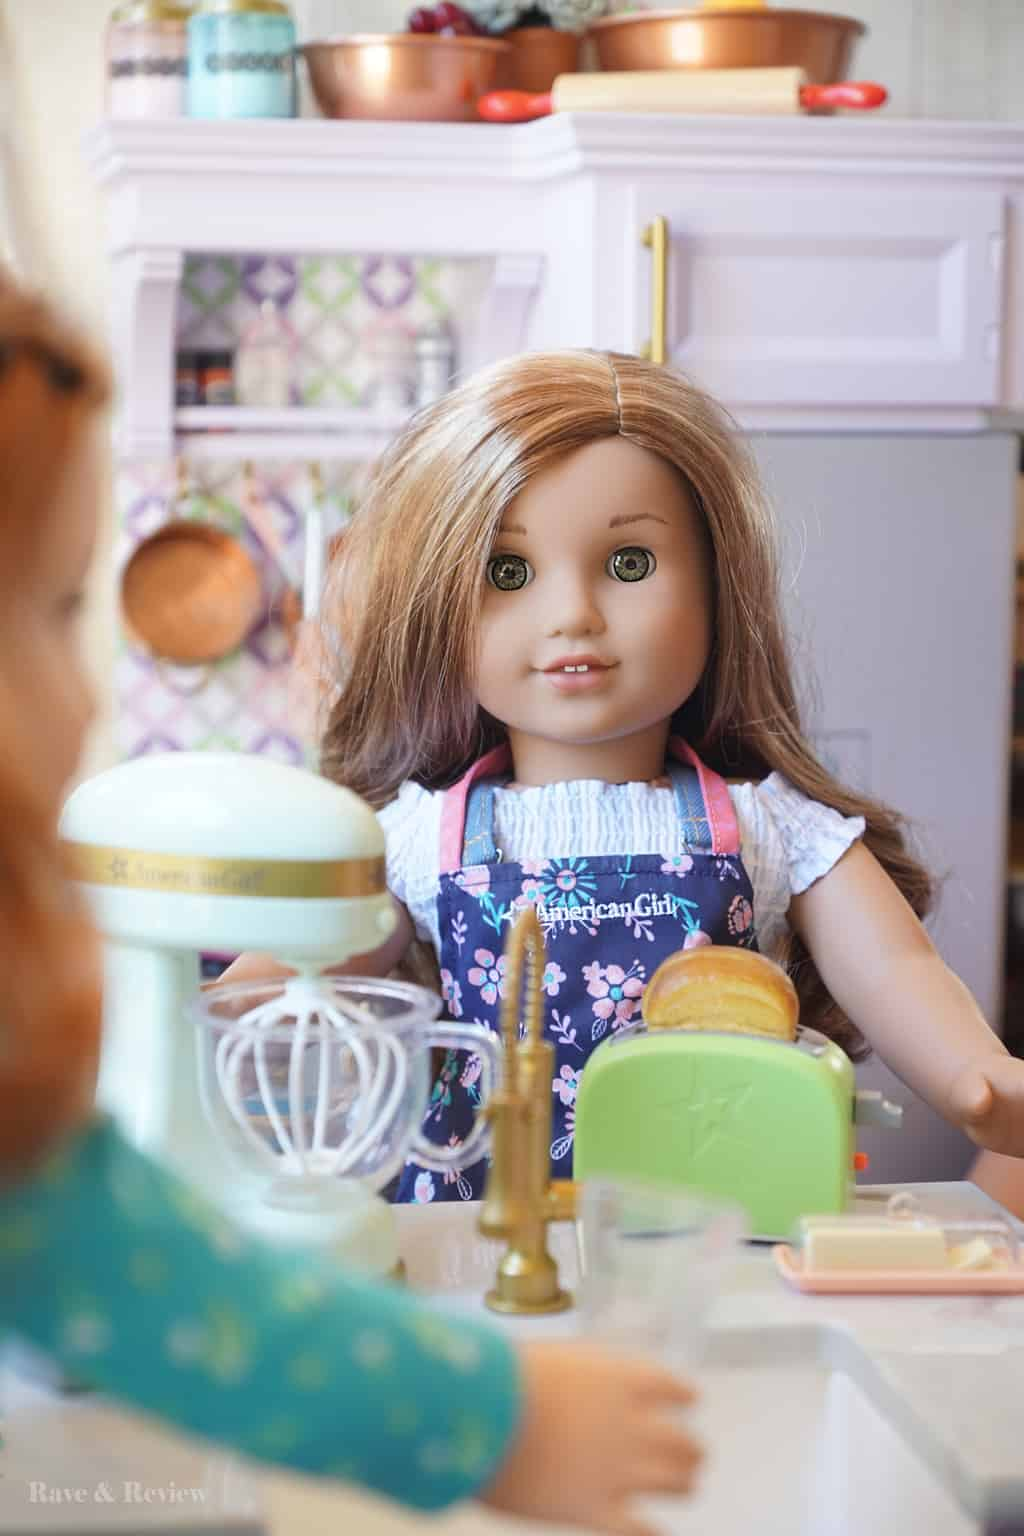 American Girl dolls in the kitchen